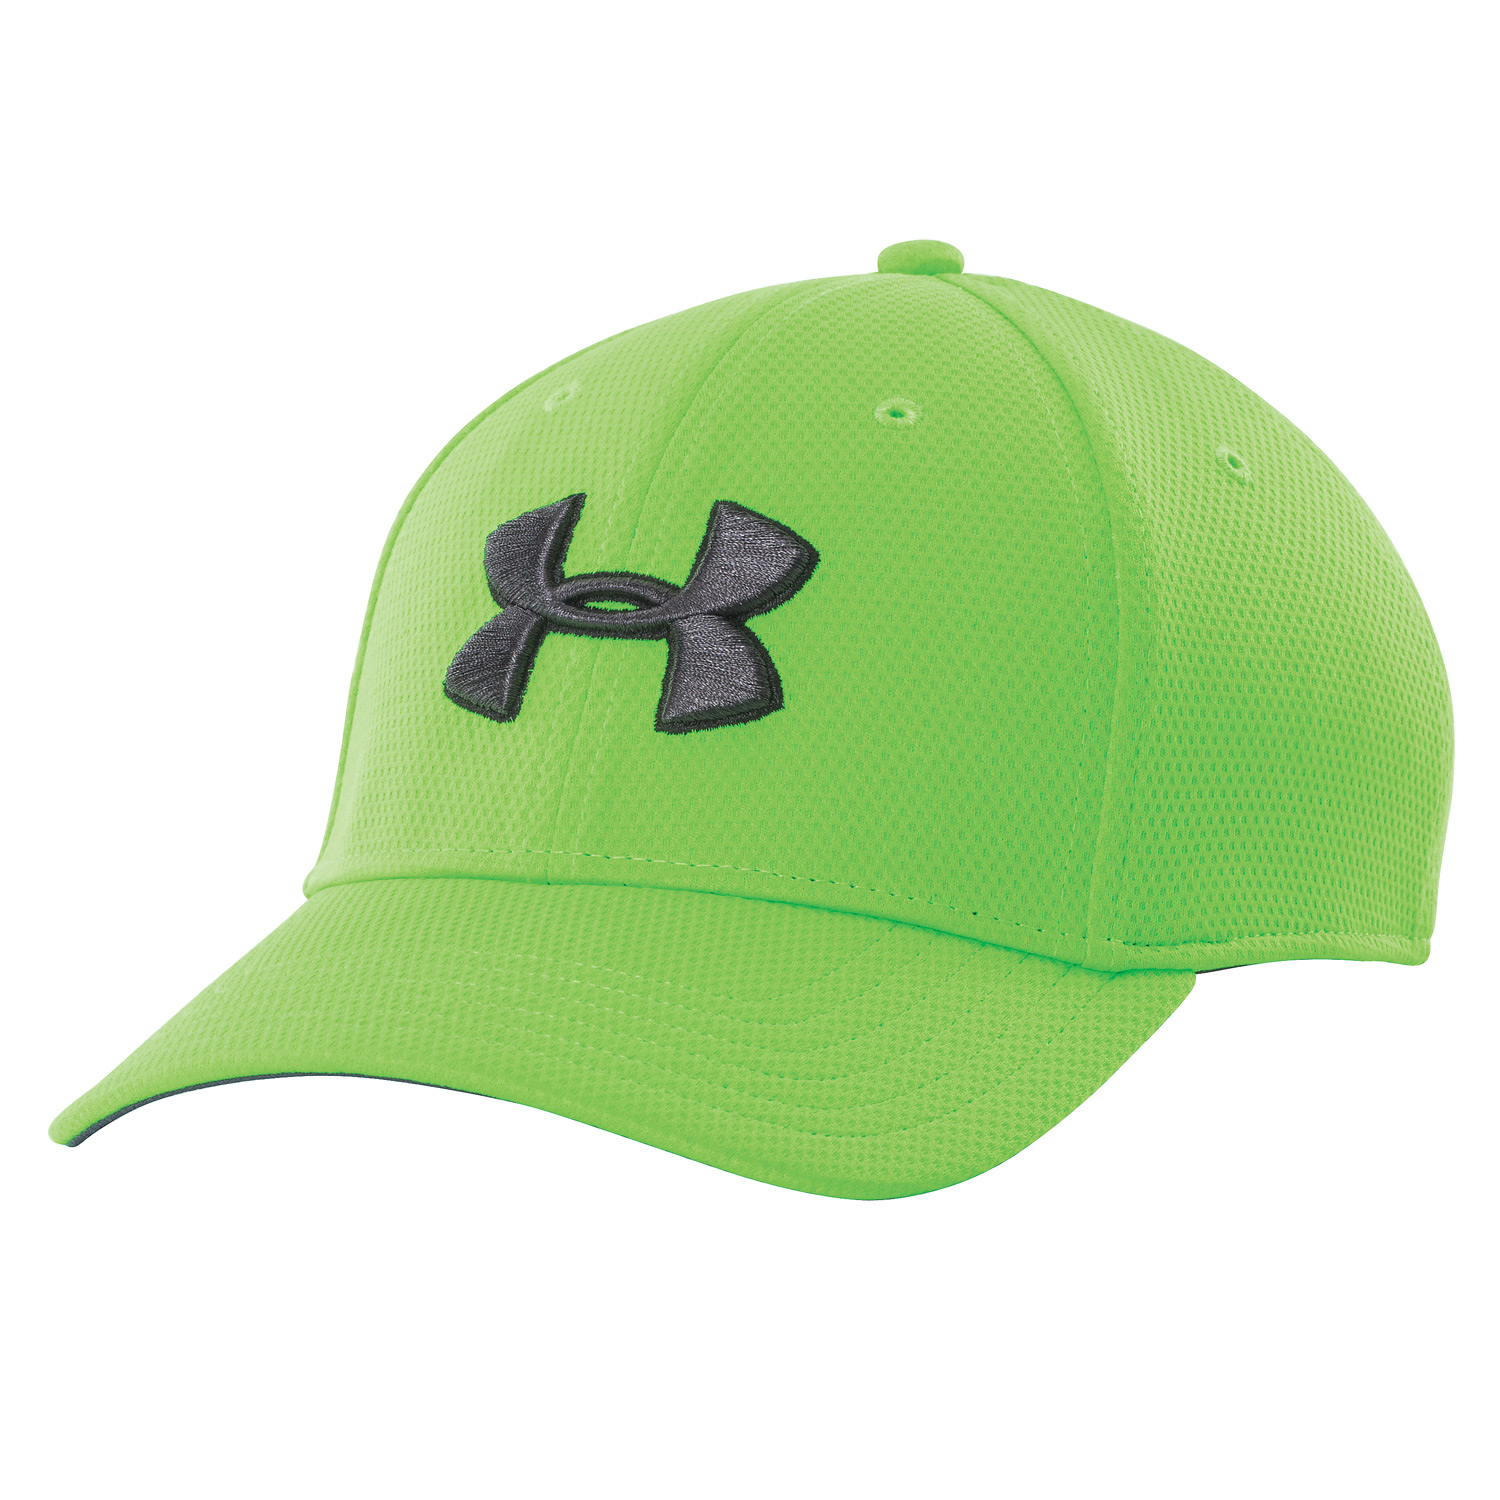 4b8f674f910 Buy Men s UA Blitzing II Stretch Fit Cap (Neon Green) - Under Armour ...